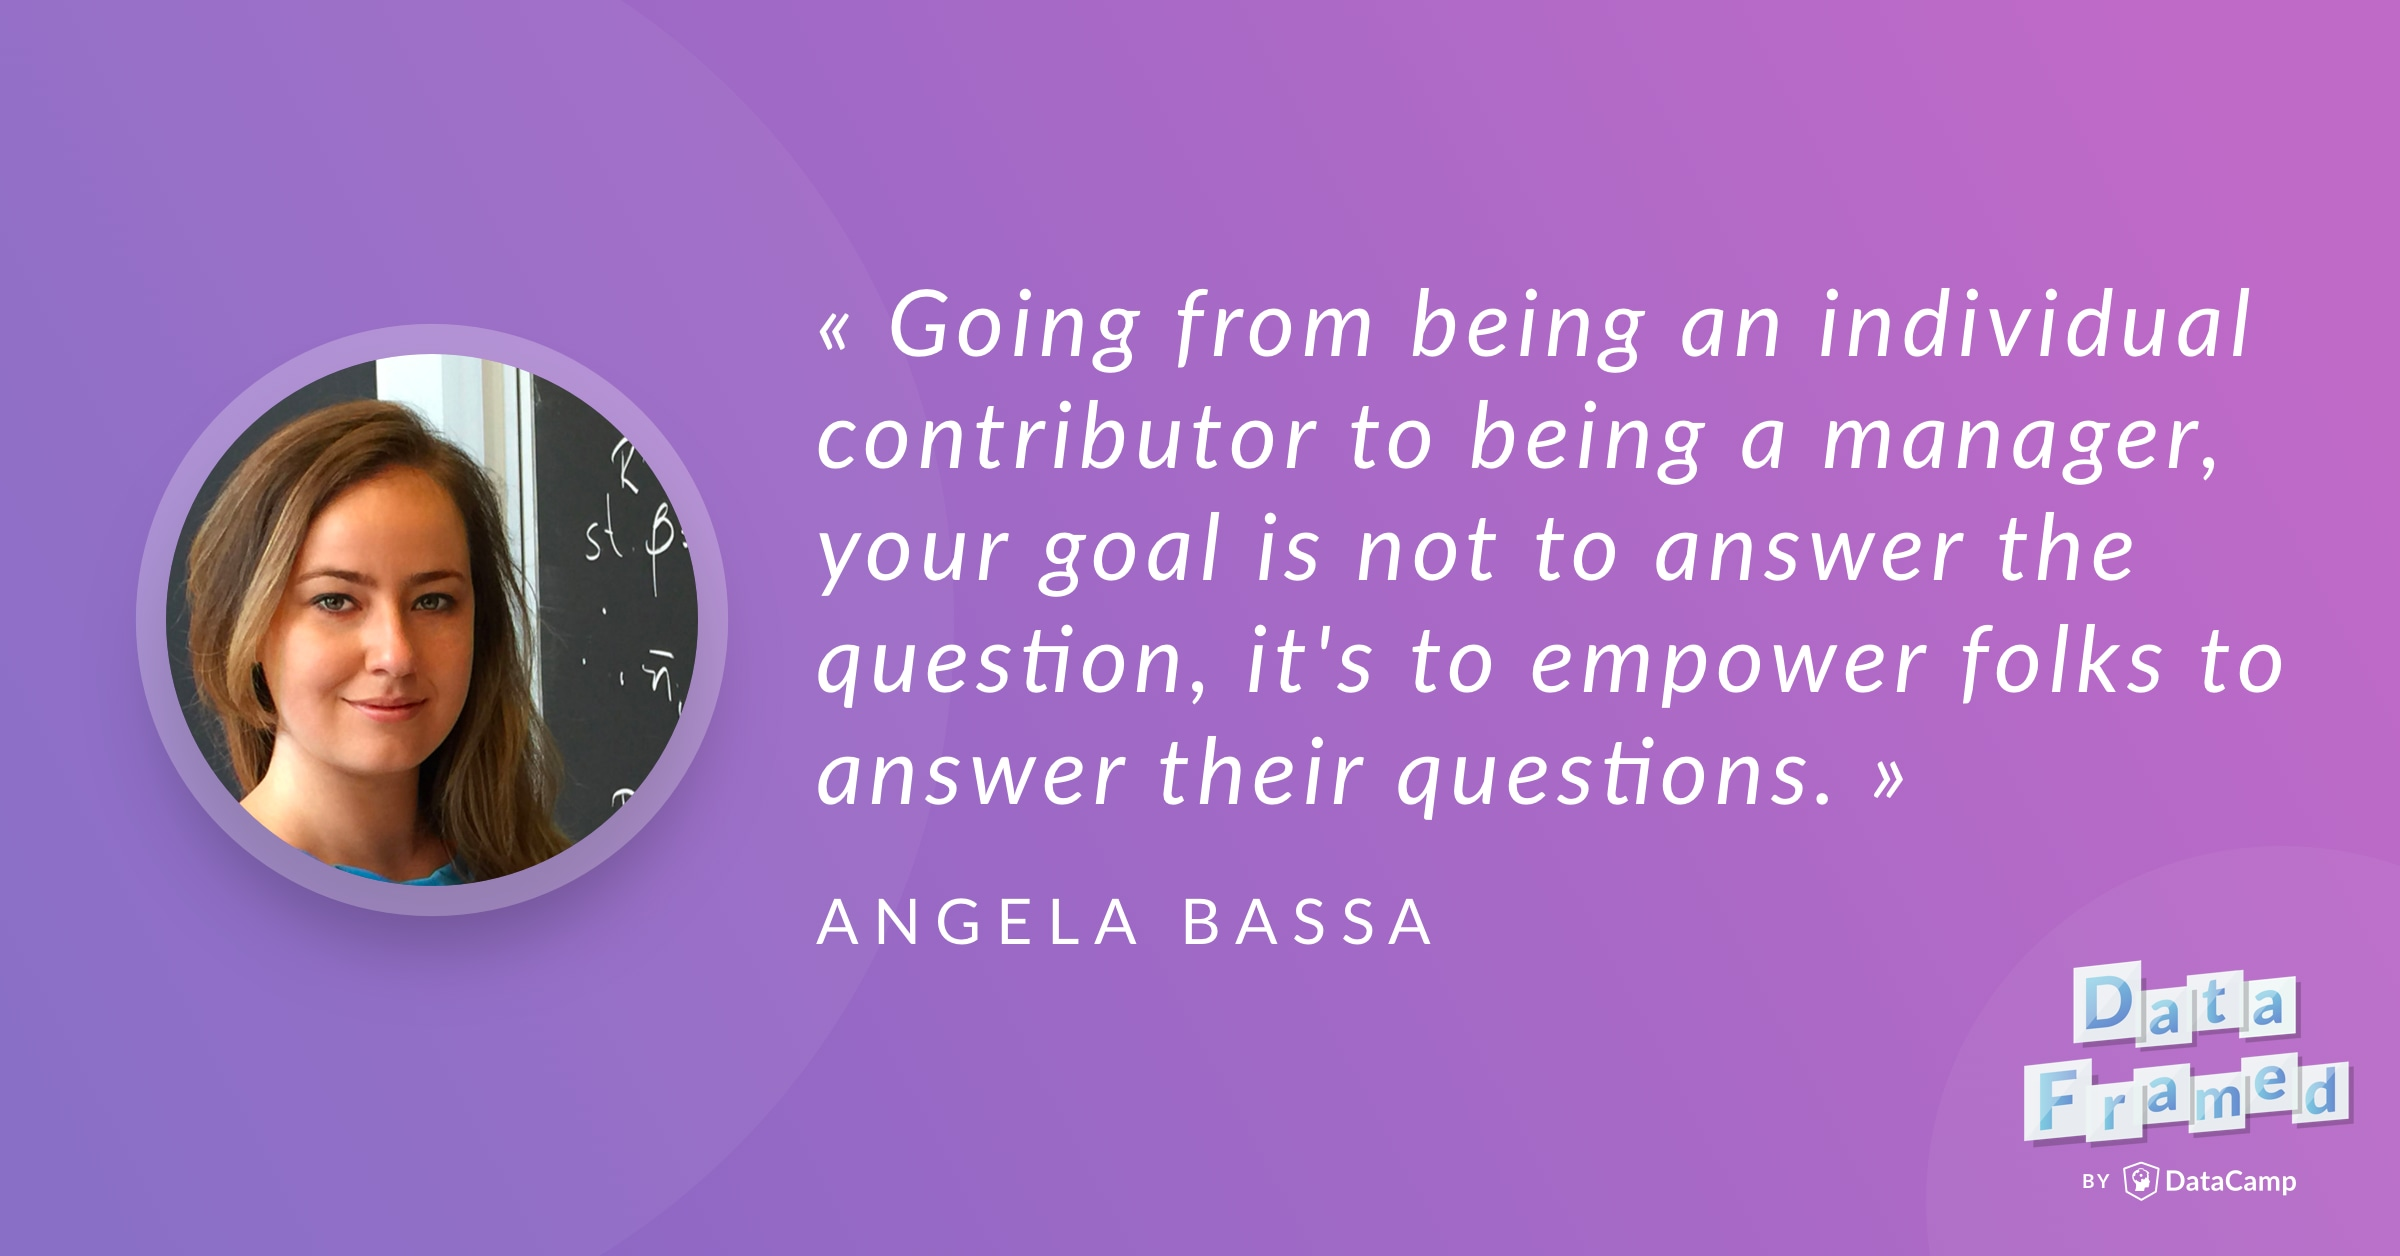 Angela Bassa discusses managing data science teams and much more.